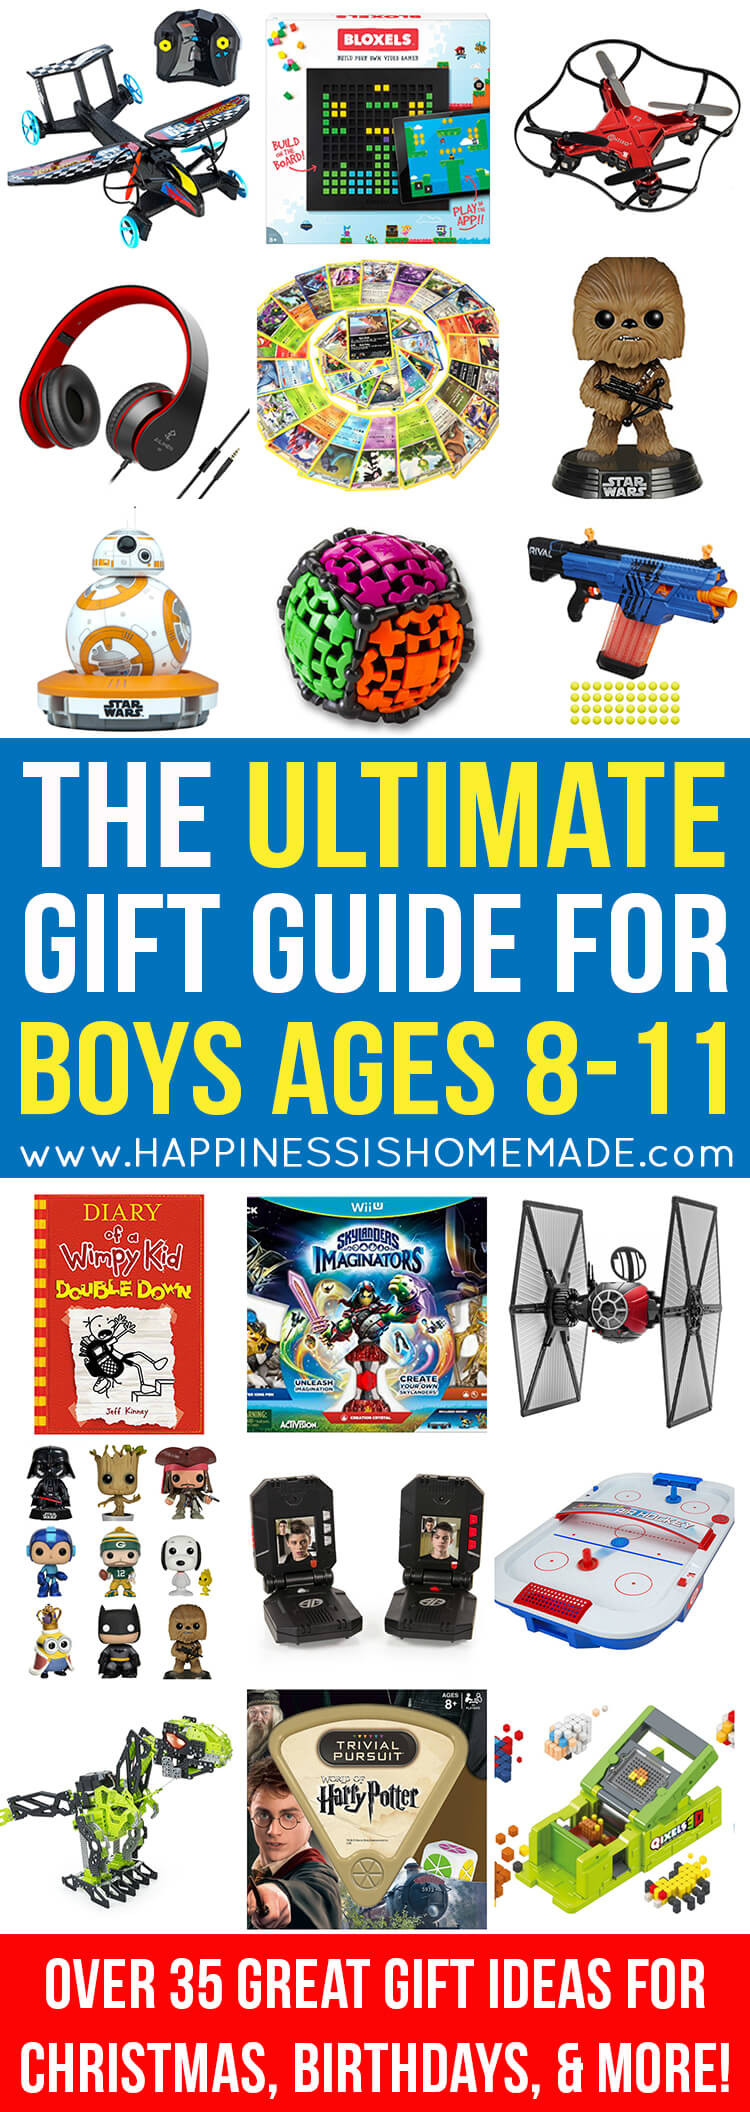 Boys Gift Ideas Age 8  The Best Gift Ideas for Boys Ages 8 11 Happiness is Homemade